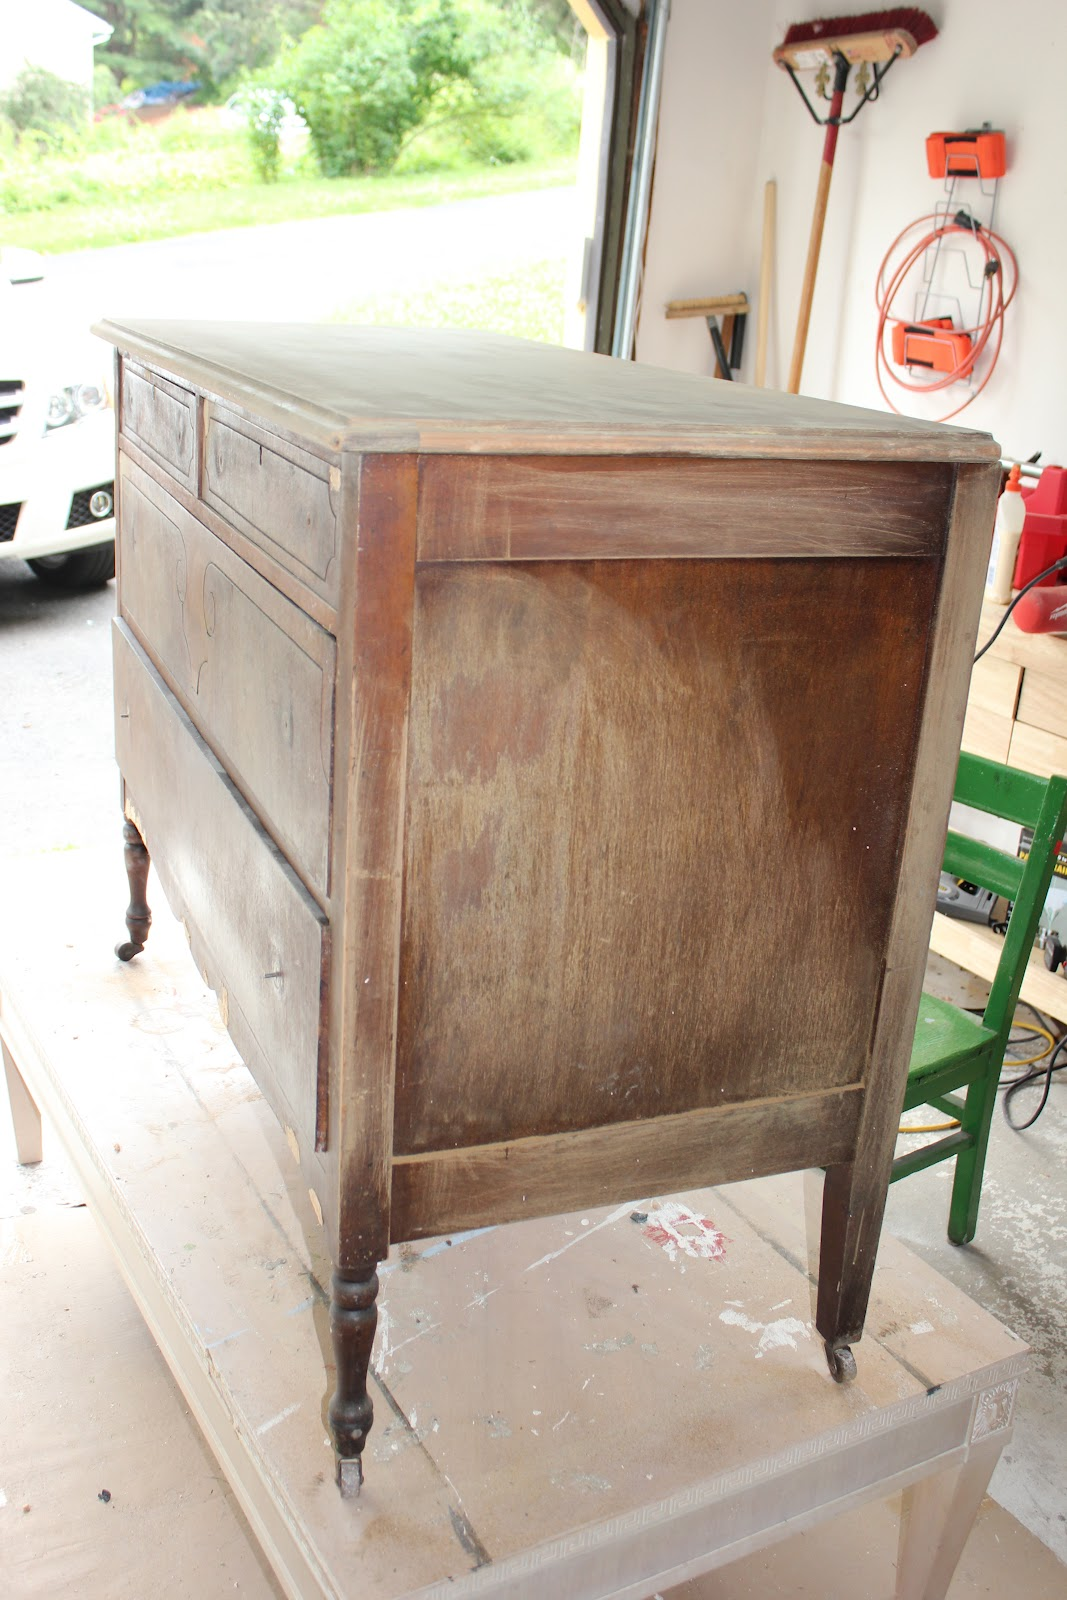 tv antique lighter lee and brushed colored different began took of lightly three by paint then cottage i drawers each dresser grace with shades a painting choosing the neutral stand drawer color